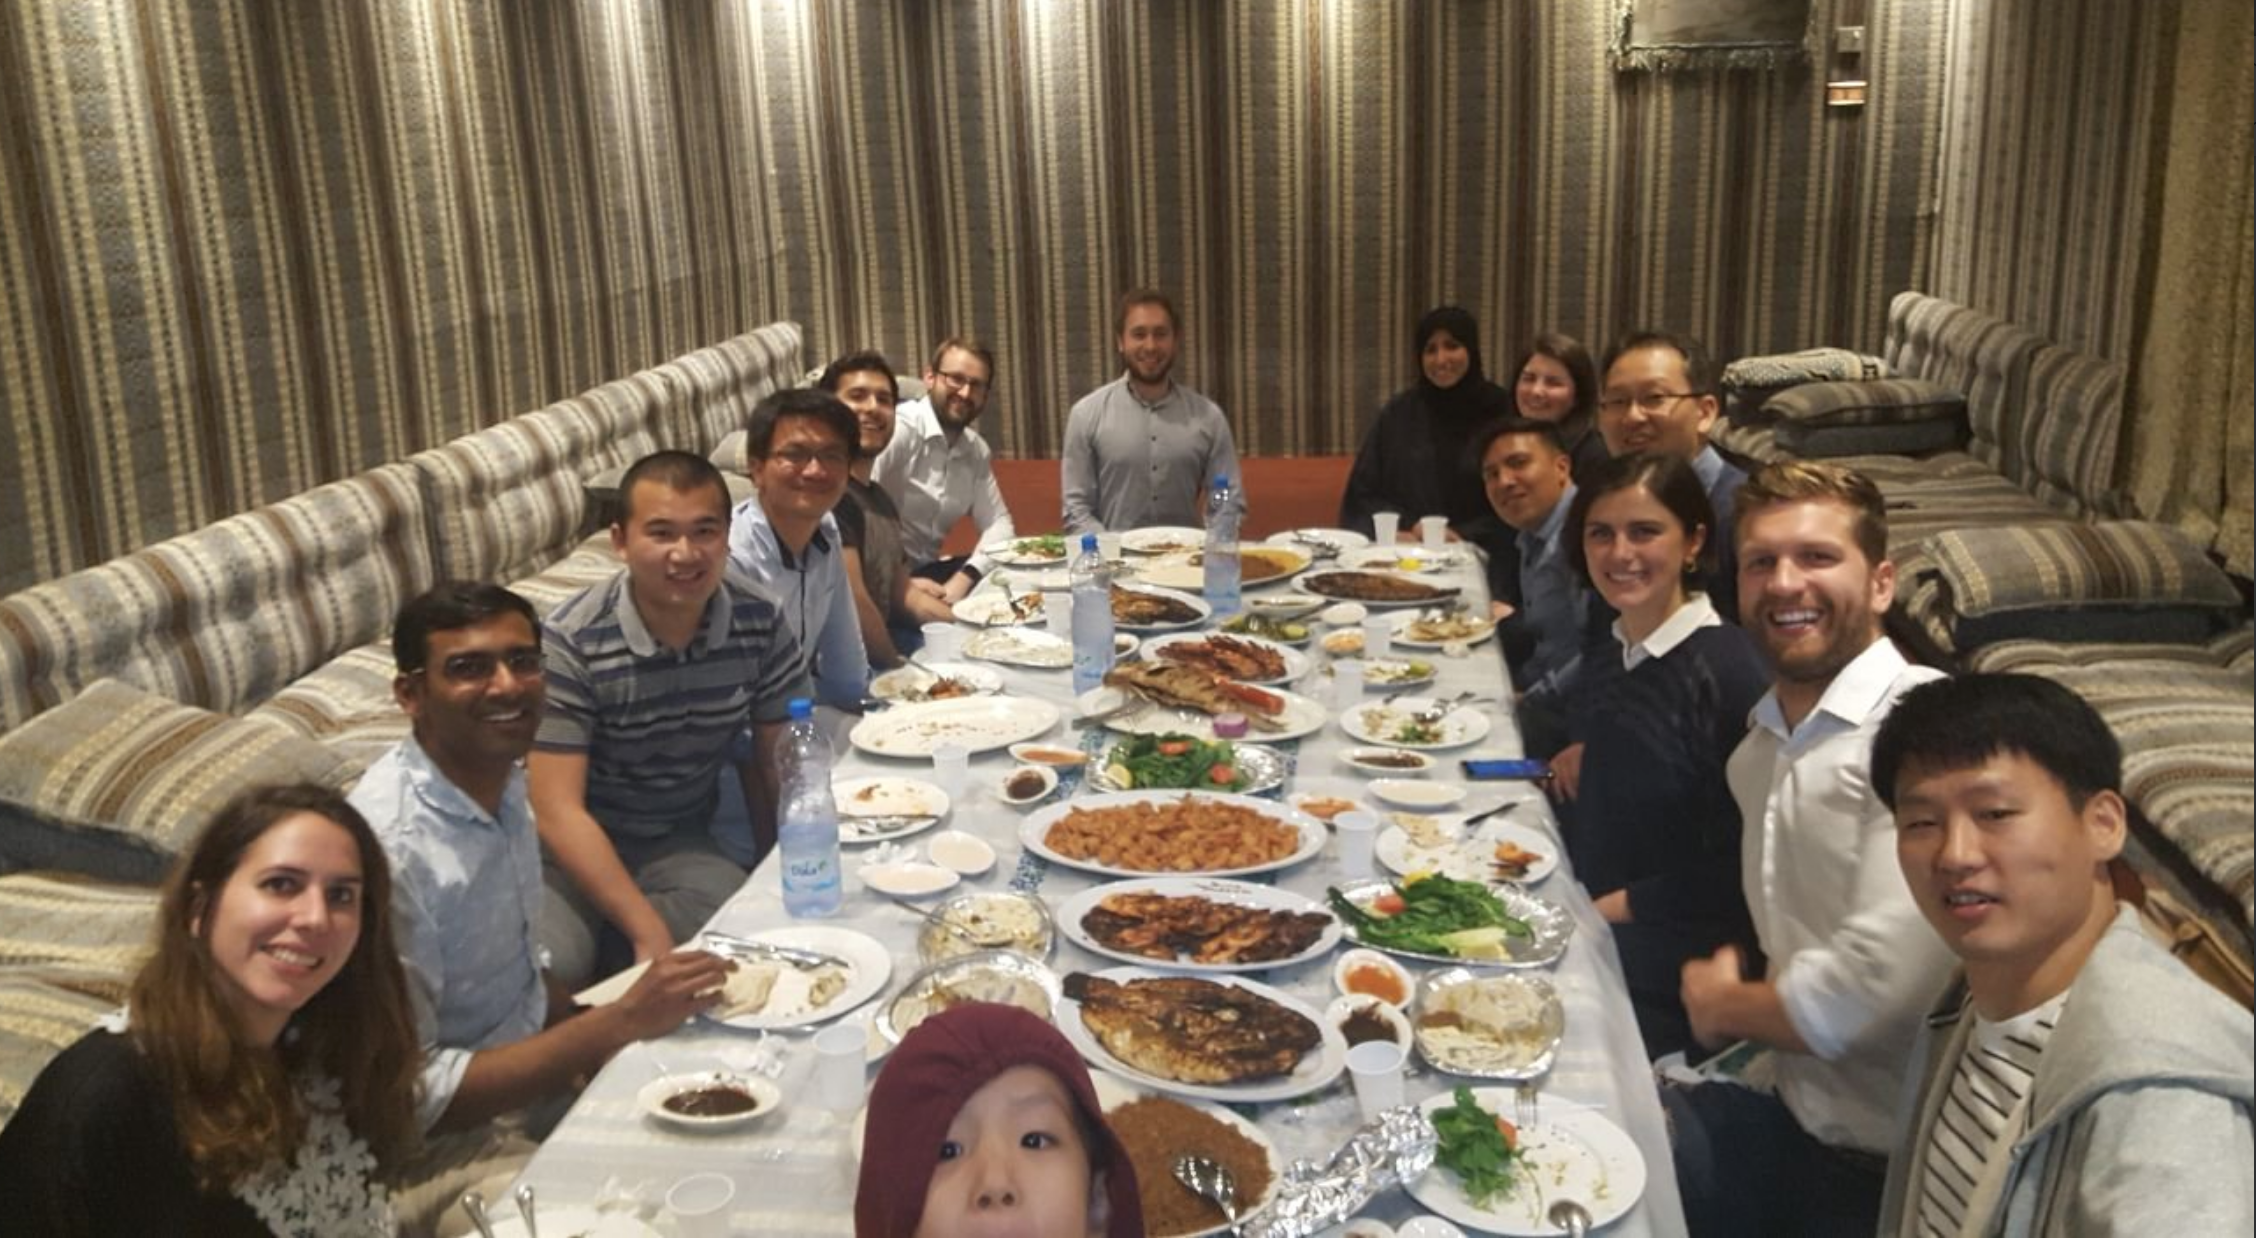 Group Dinner at Thuwal - 21/2/18OMEGA Lab team member visit neighboring town Thuwal, with guest visitor Dr.Han Woo Young, for a nice traditional evening dinner!